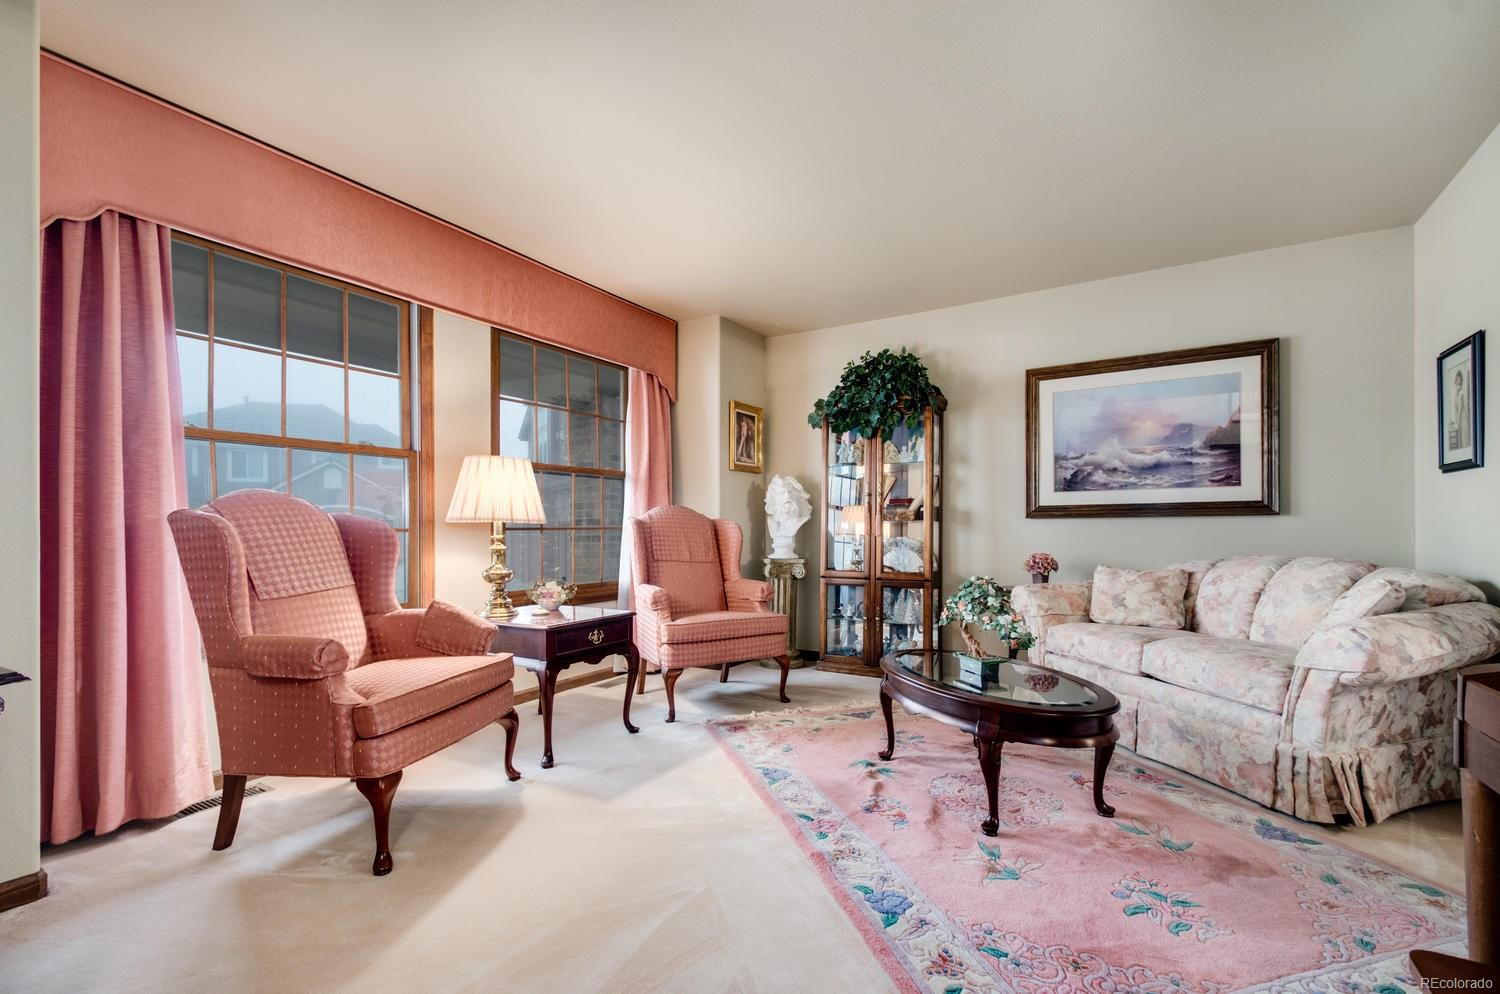 Enjoy natural light from the large windows!